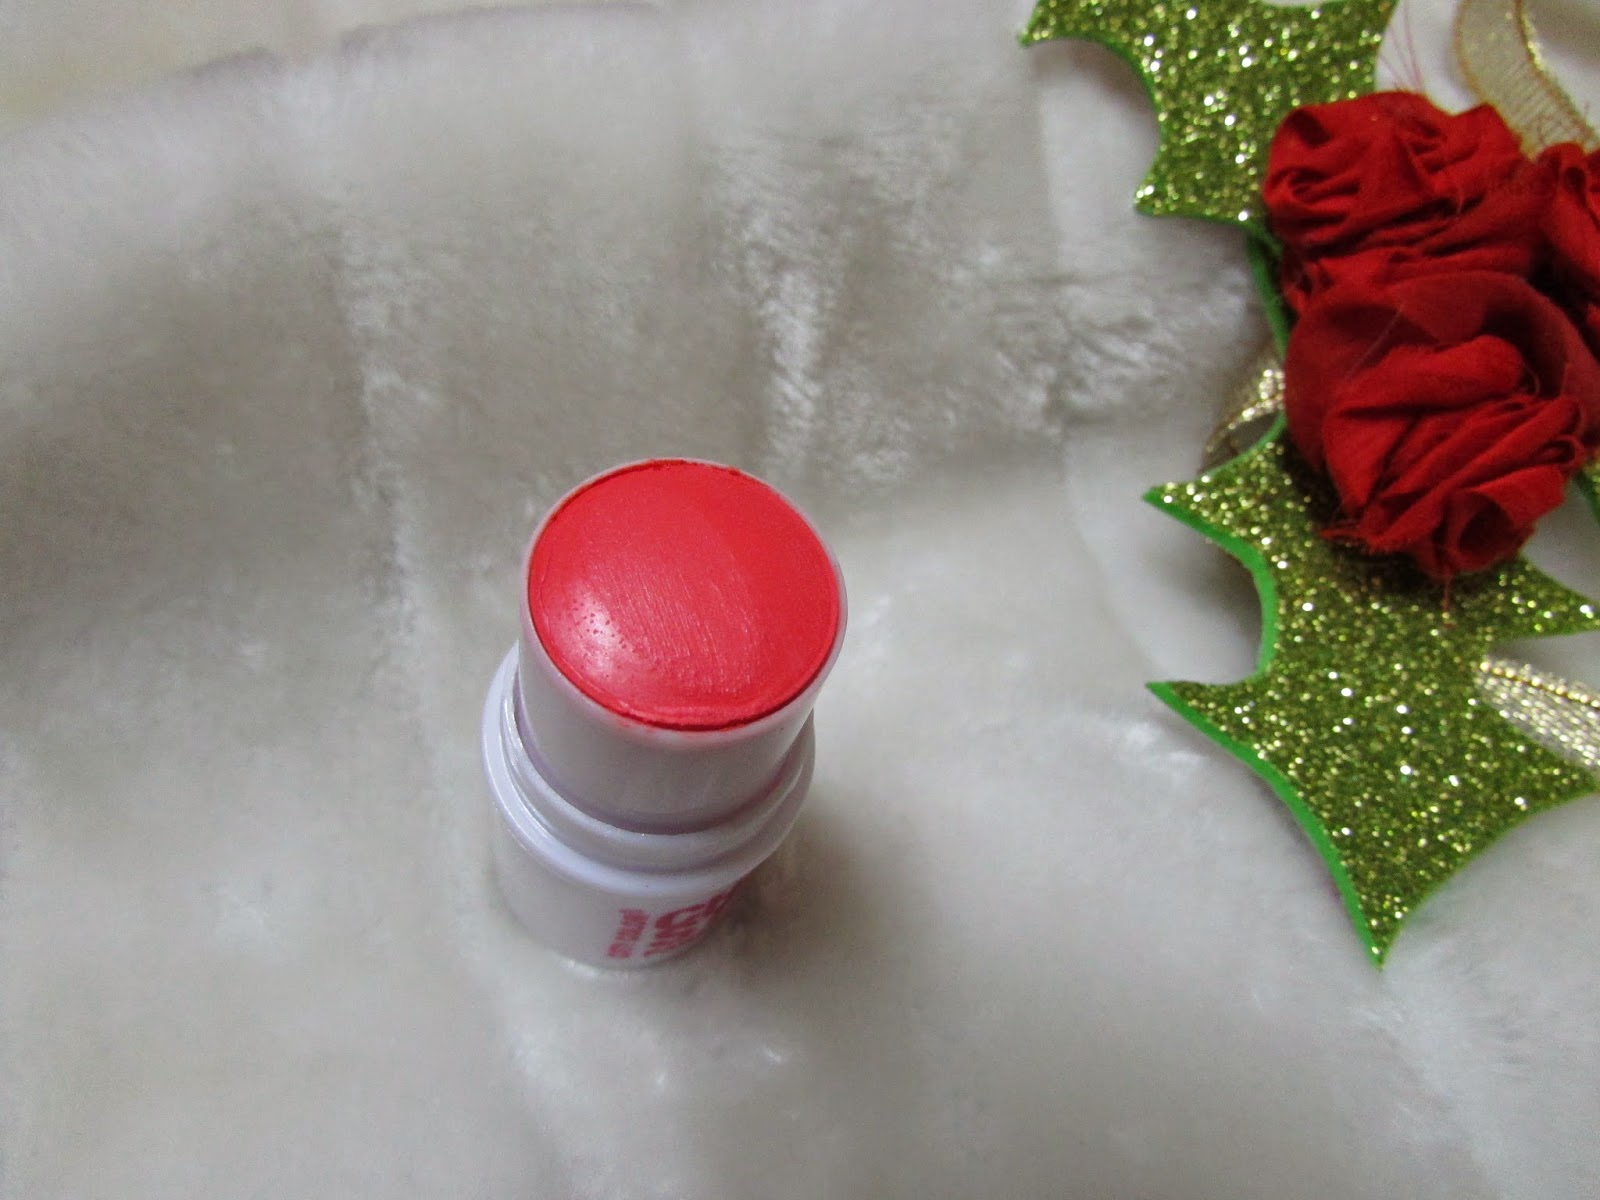 City Color, December Fab Bag price, December Fab Bag Review, Fab Bag, Fab Bag india, Fab Bag subscription, IndieEco, Kronokare, makeup monthly subscription service, Sally Hansen, IndieEco Luxury Handcrafted Candle,City Color Cheek Stain in coral,Sally Hansen Natural Nail Growth Activator,Kronokare Itsy Bitsy Nassage Addict Kit -cooling & Detoxification,Chocolato Chocolatey Christmas Gift,beauty , fashion,beauty and fashion,beauty blog, fashion blog , indian beauty blog,indian fashion blog, beauty and fashion blog, indian beauty and fashion blog, indian bloggers, indian beauty bloggers, indian fashion bloggers,indian bloggers online, top 10 indian bloggers, top indian bloggers,top 10 fashion bloggers, indian bloggers on blogspot,home remedies, how to